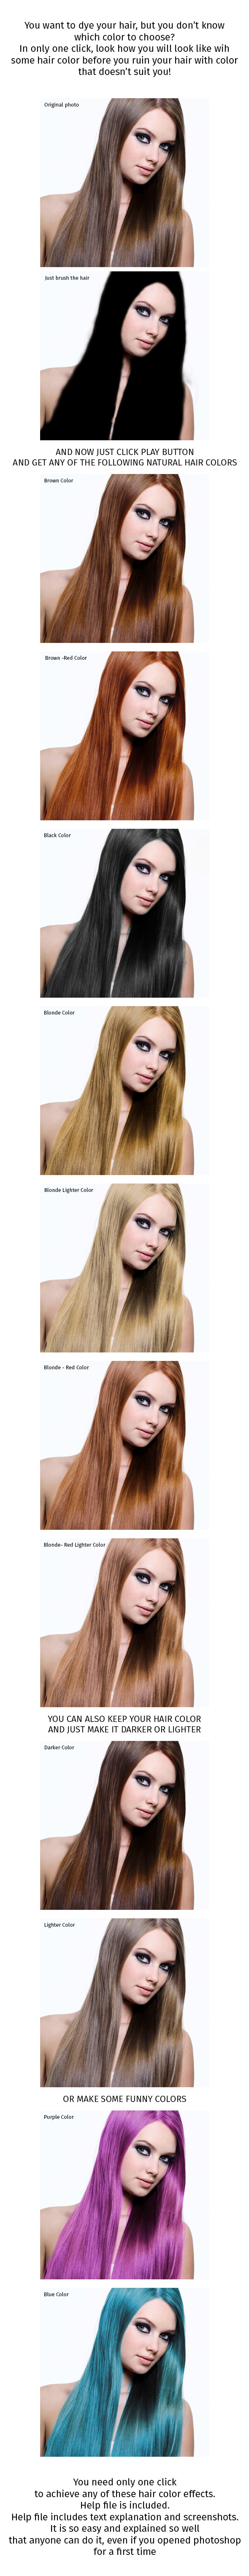 GraphicRiver Hair Color Effect 8872948